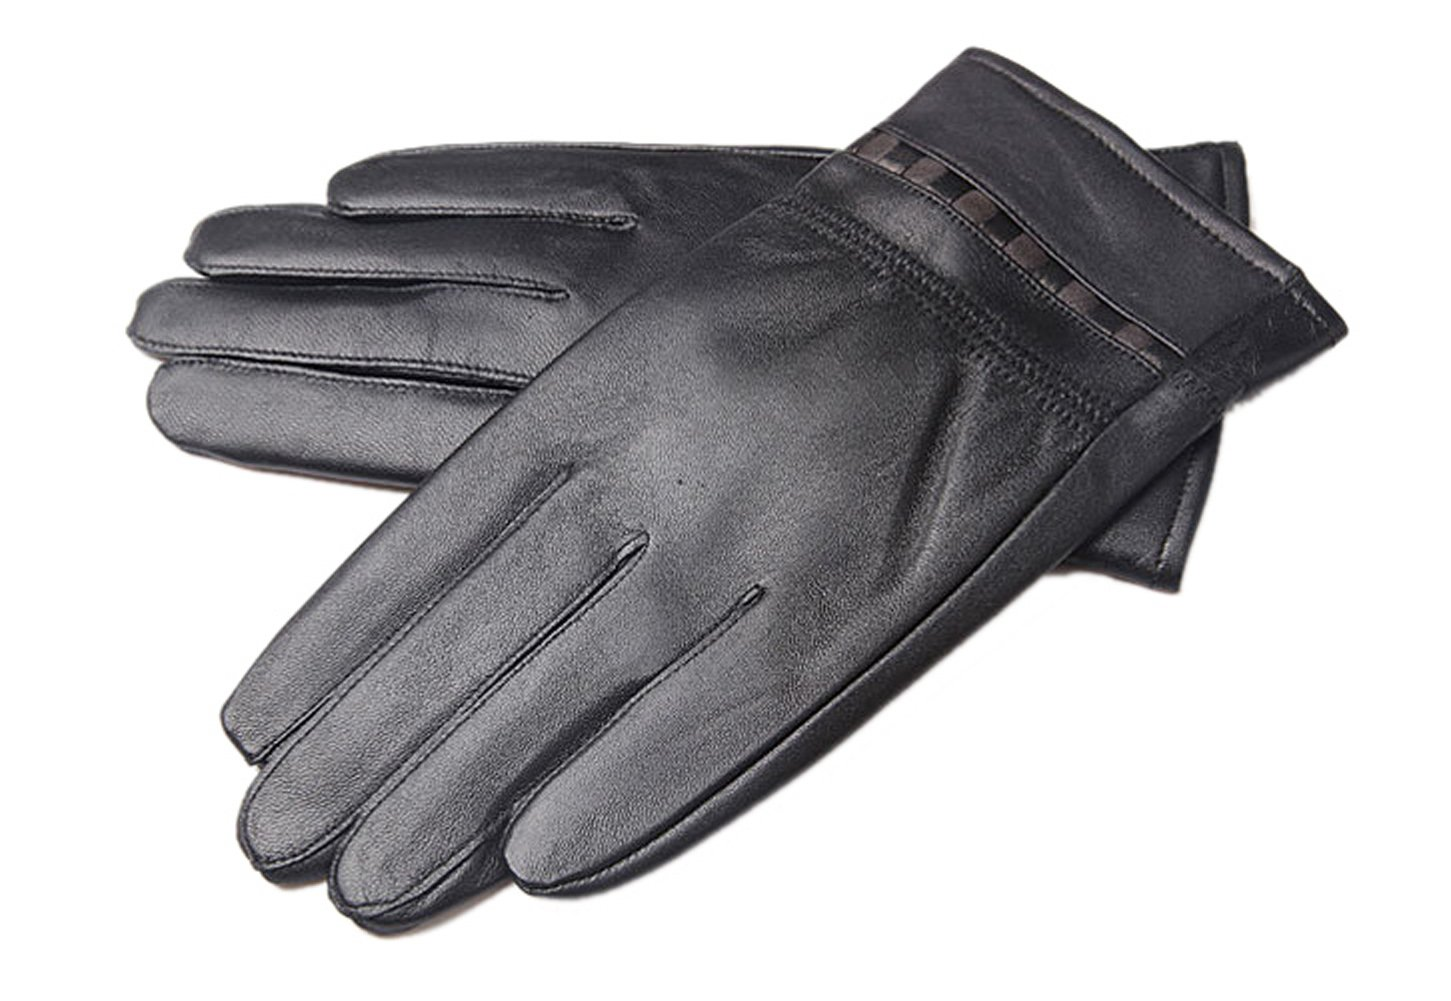 Liveinu Men's Lambskin Motocycle Driving leather Gloves for Winter Black One Size LVNU-7132-1